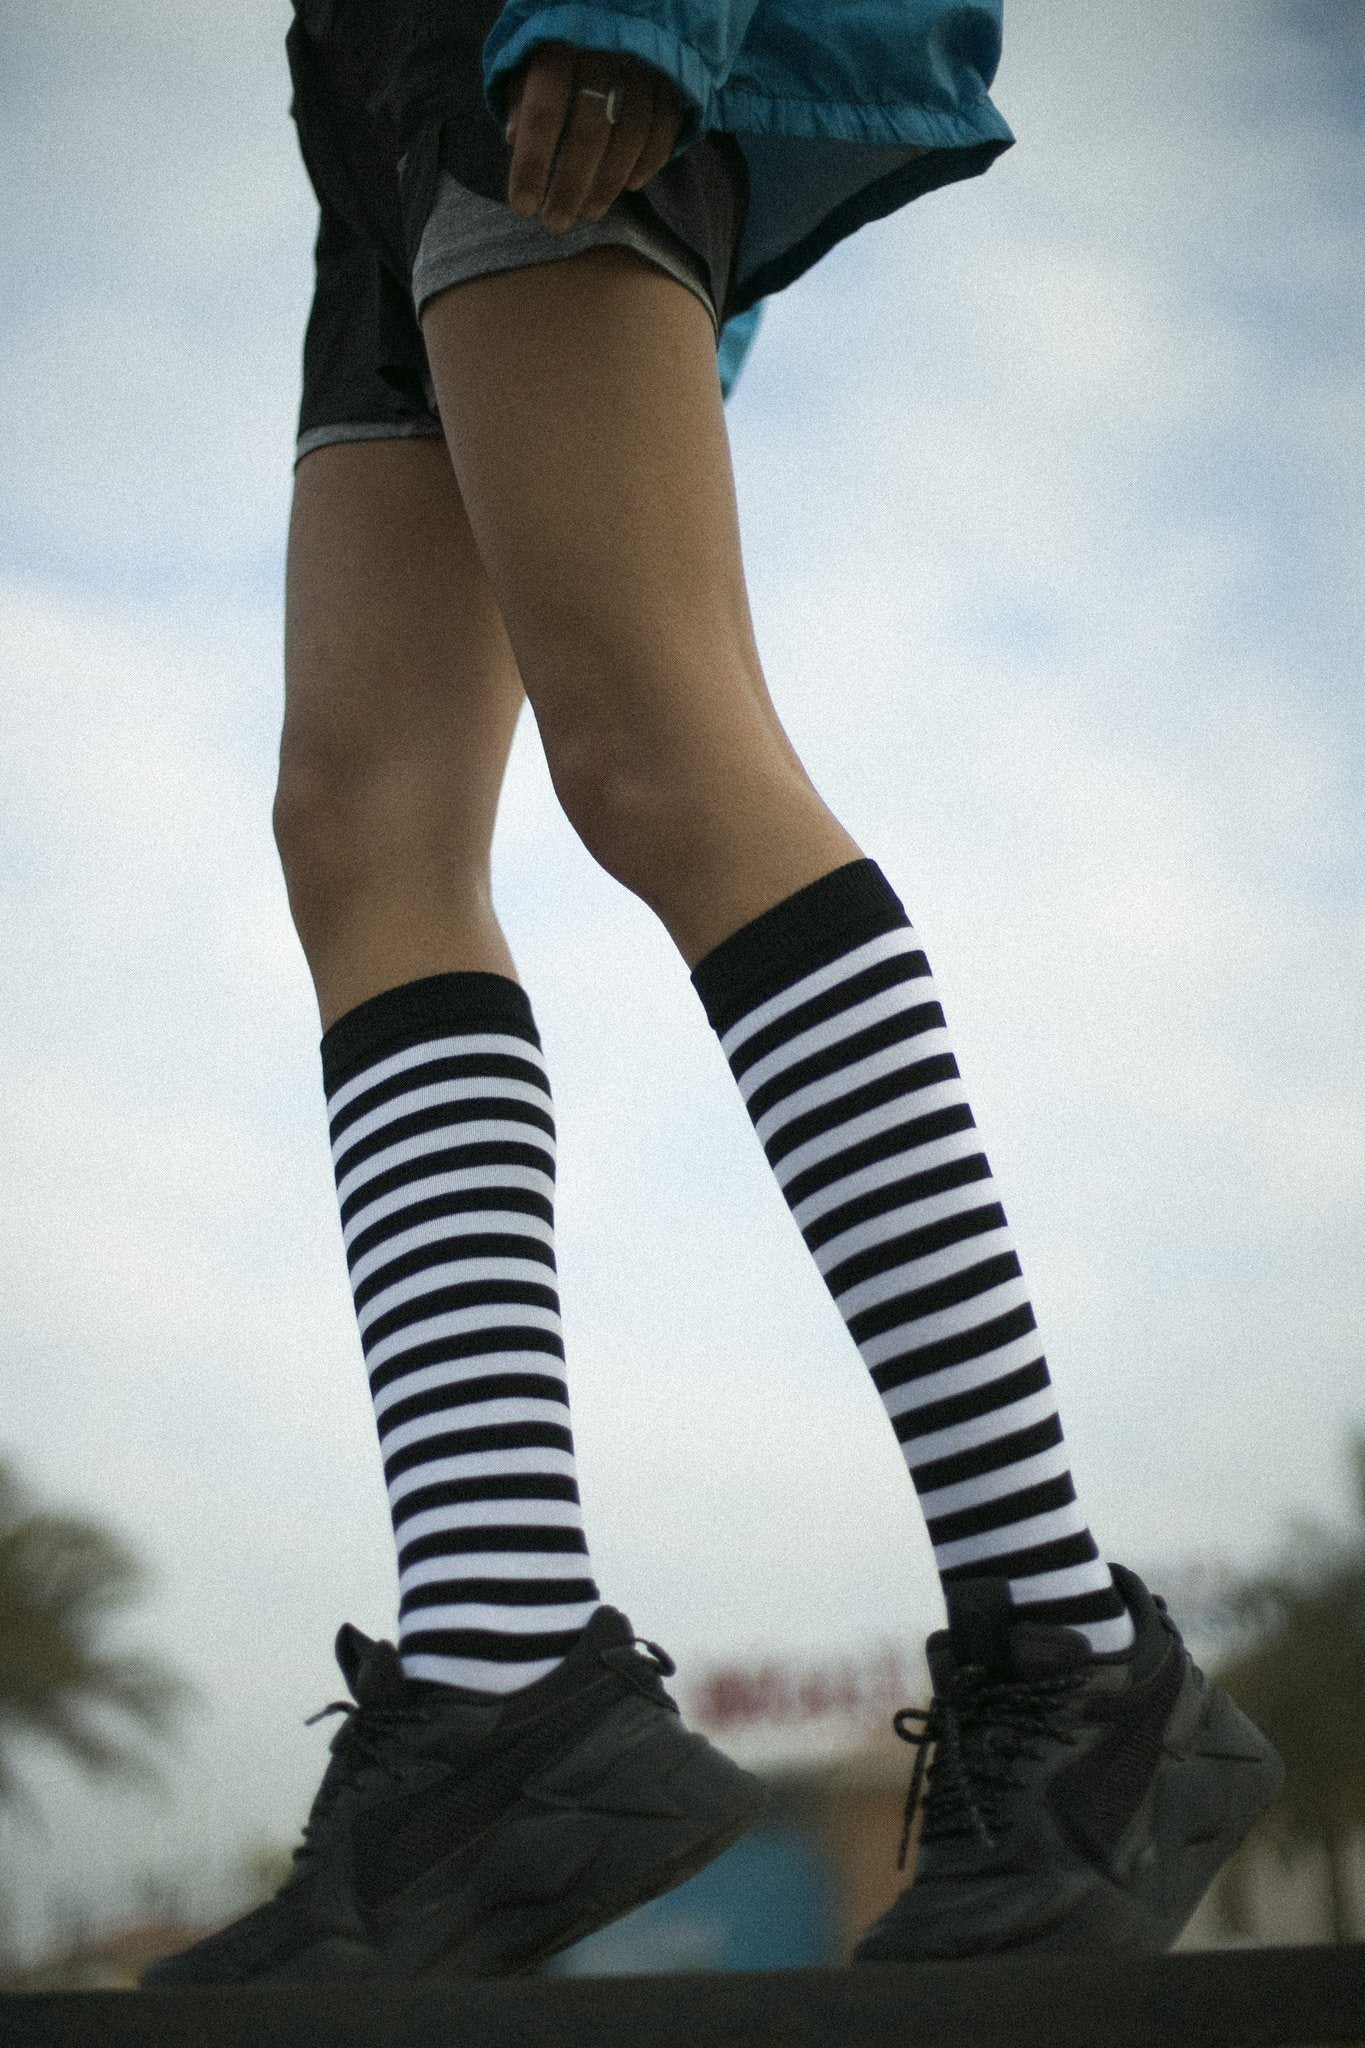 Full Pack (Knee-High Socks) Knee-High Socks IN YOUR SHOE